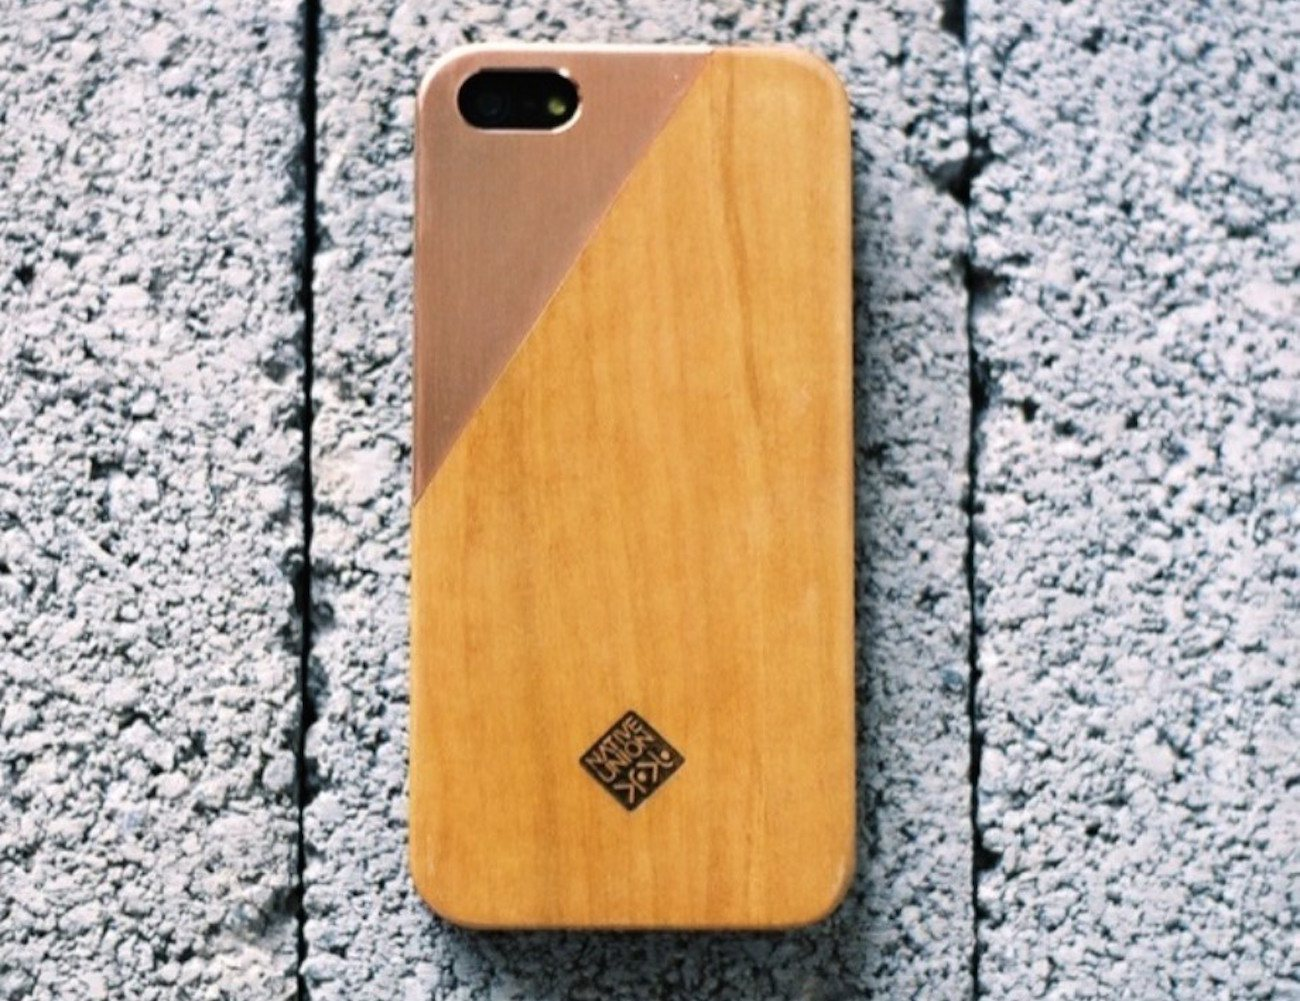 CLIC Metal iPhone SE/5s case by Native Union